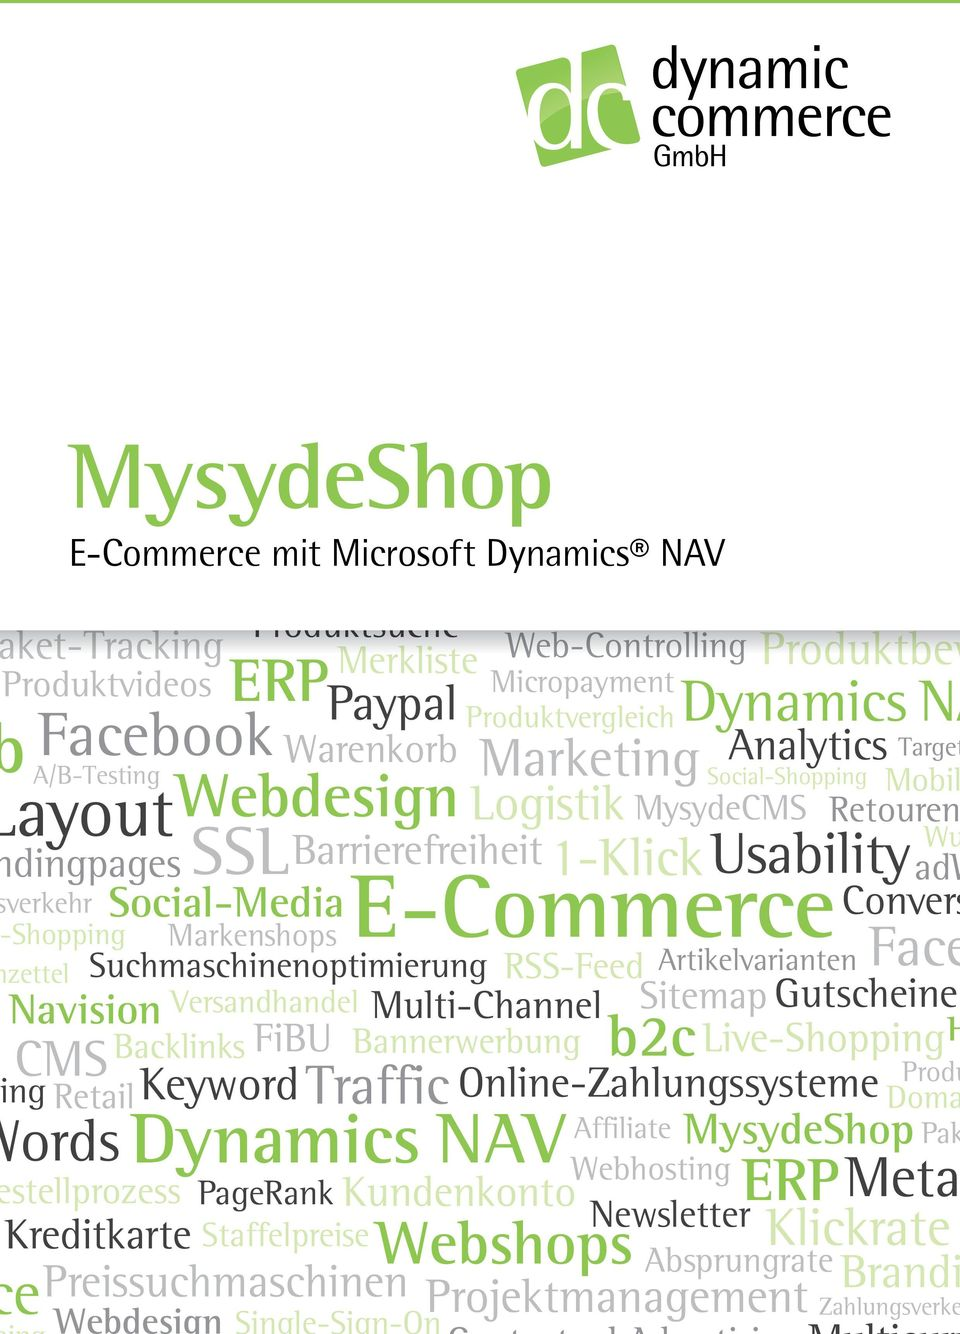 Social-Shopping 1-Klick Retouren Produktvergleich Staffelpreise taffelpreise Produktbew Shopping zettel Wu Merkliste Kundenkonto stellprozess Single-Sign-On Single-Sign-On Backlinks Brandi Brand